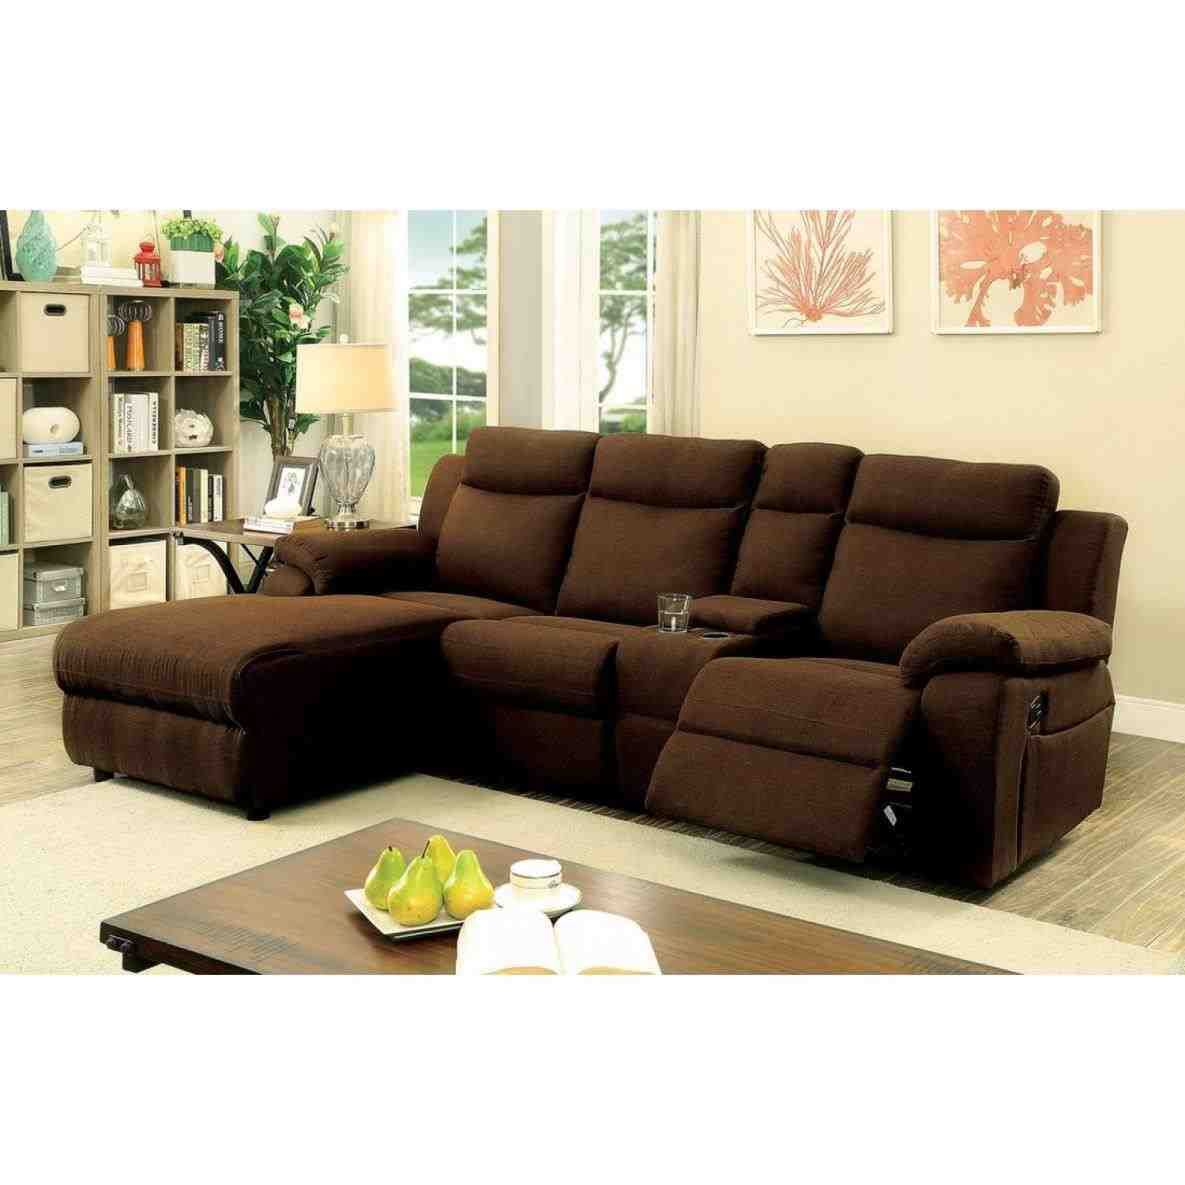 Cheap Living Room Furniture Under 300 Cheap Living Room Furniture Sets Cheap Living Room Sets Sectional Sofa With Chaise